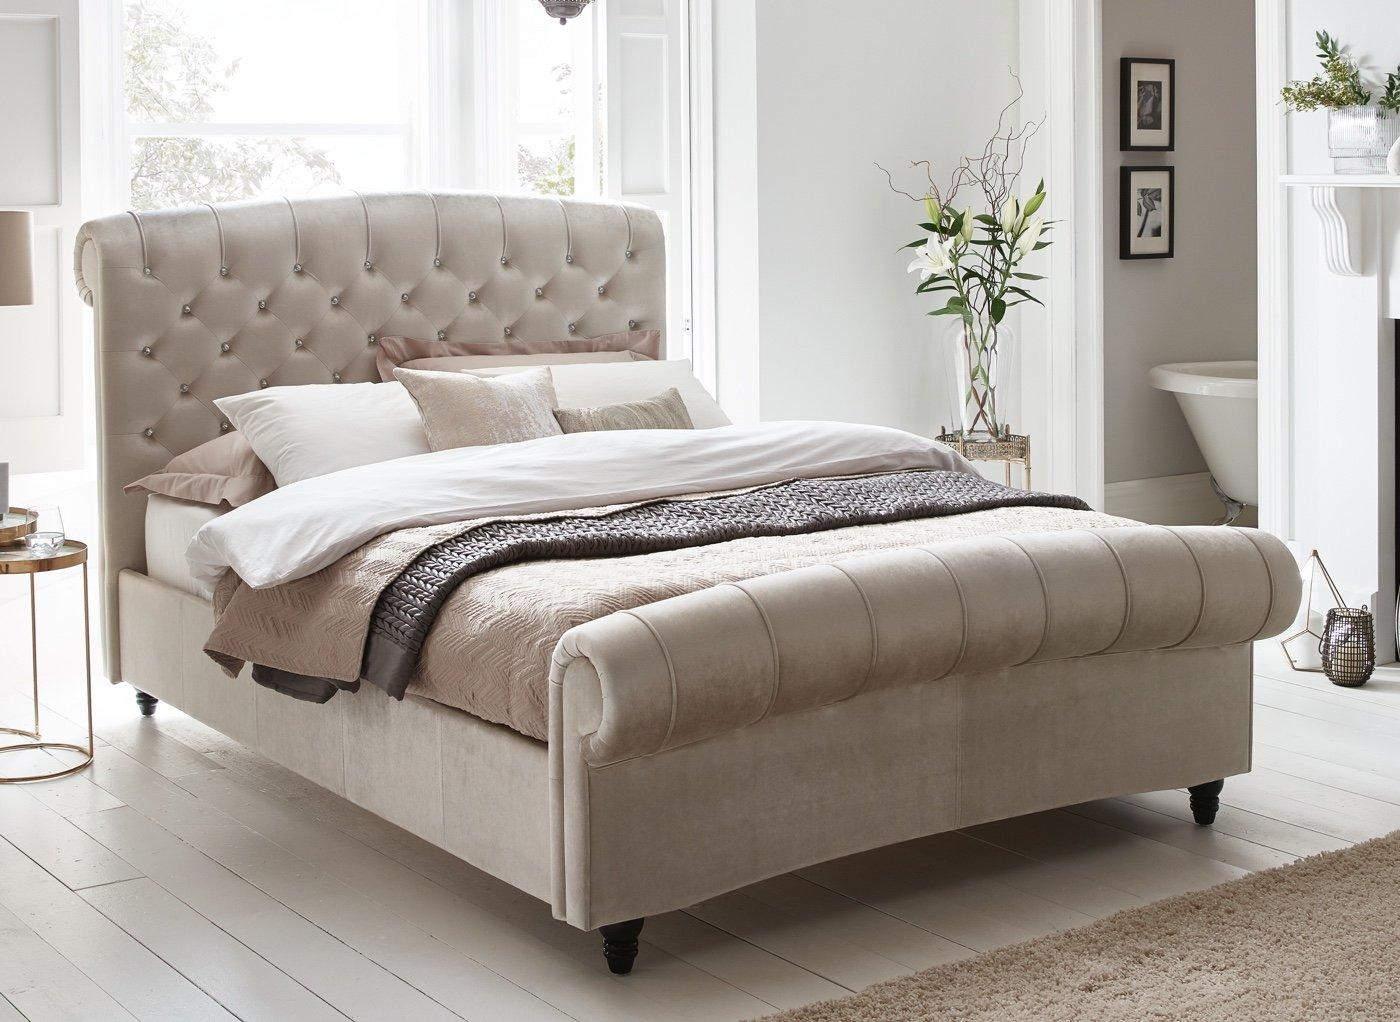 Dreams Ellis Velvet Finish Upholstered Bed from £639